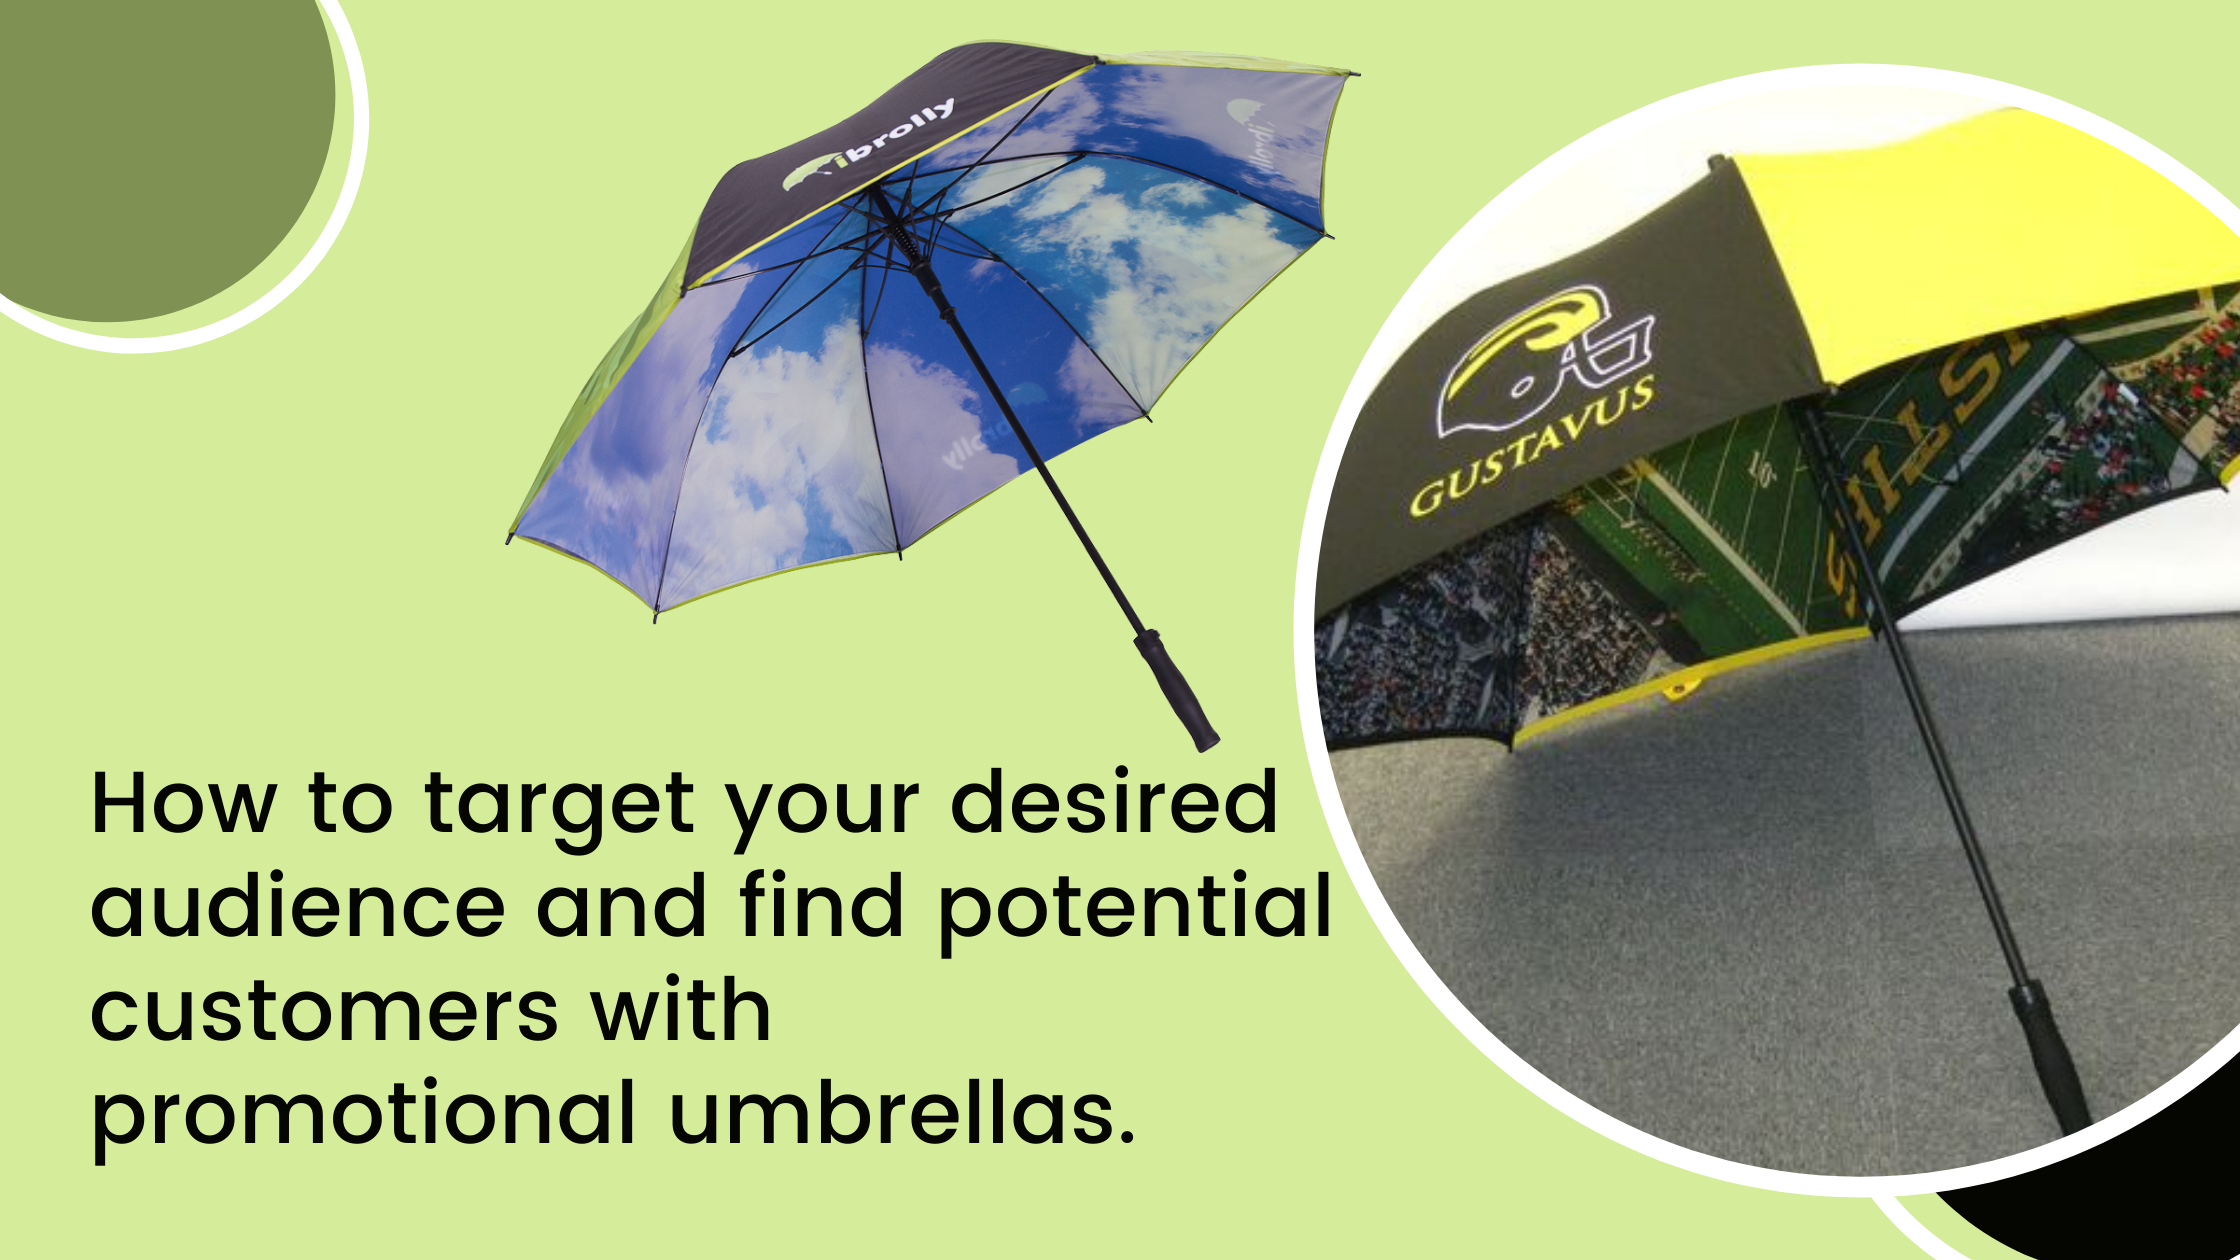 How to target your desired audience and find potential customers with promotional umbrellas.